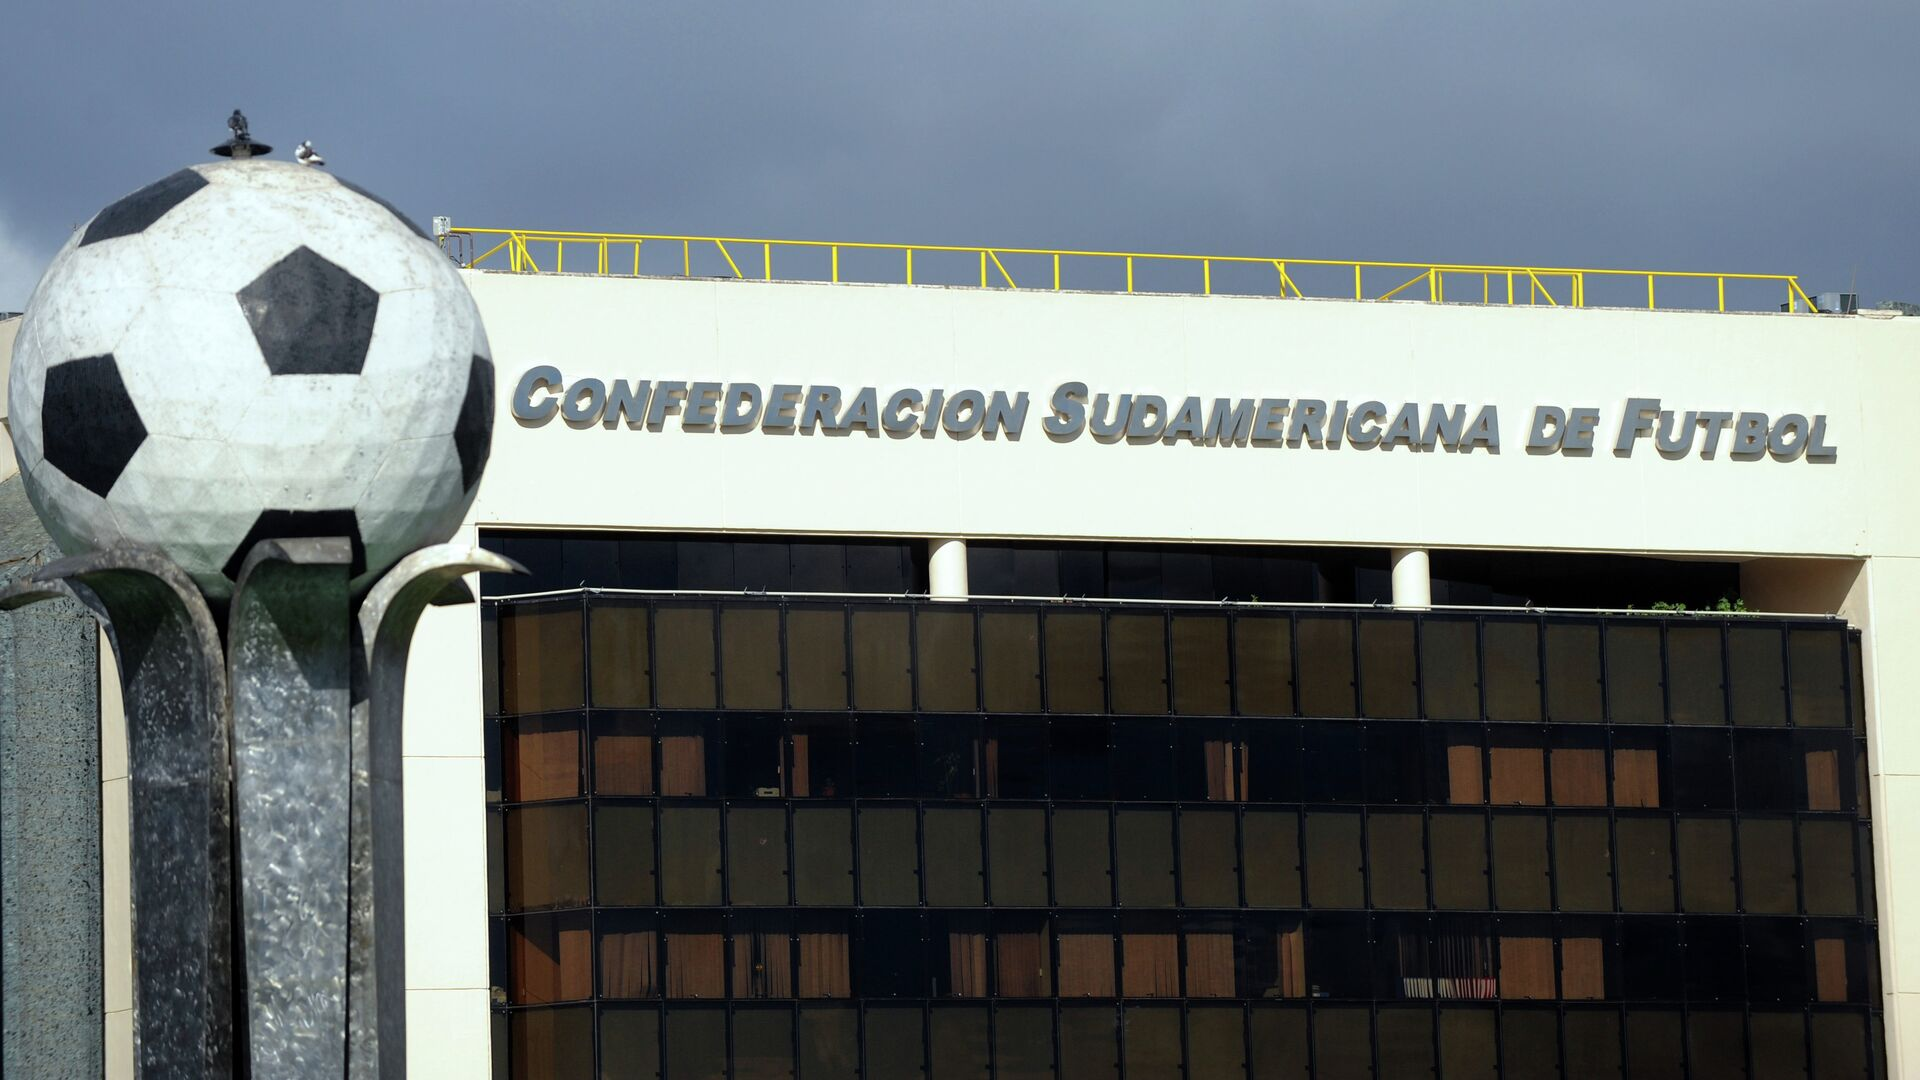 The South American Football Confederation (Conmebol) headquarters on May 28, 2015 in Luque, Paraguay.  - Sputnik Mundo, 1920, 13.05.2021